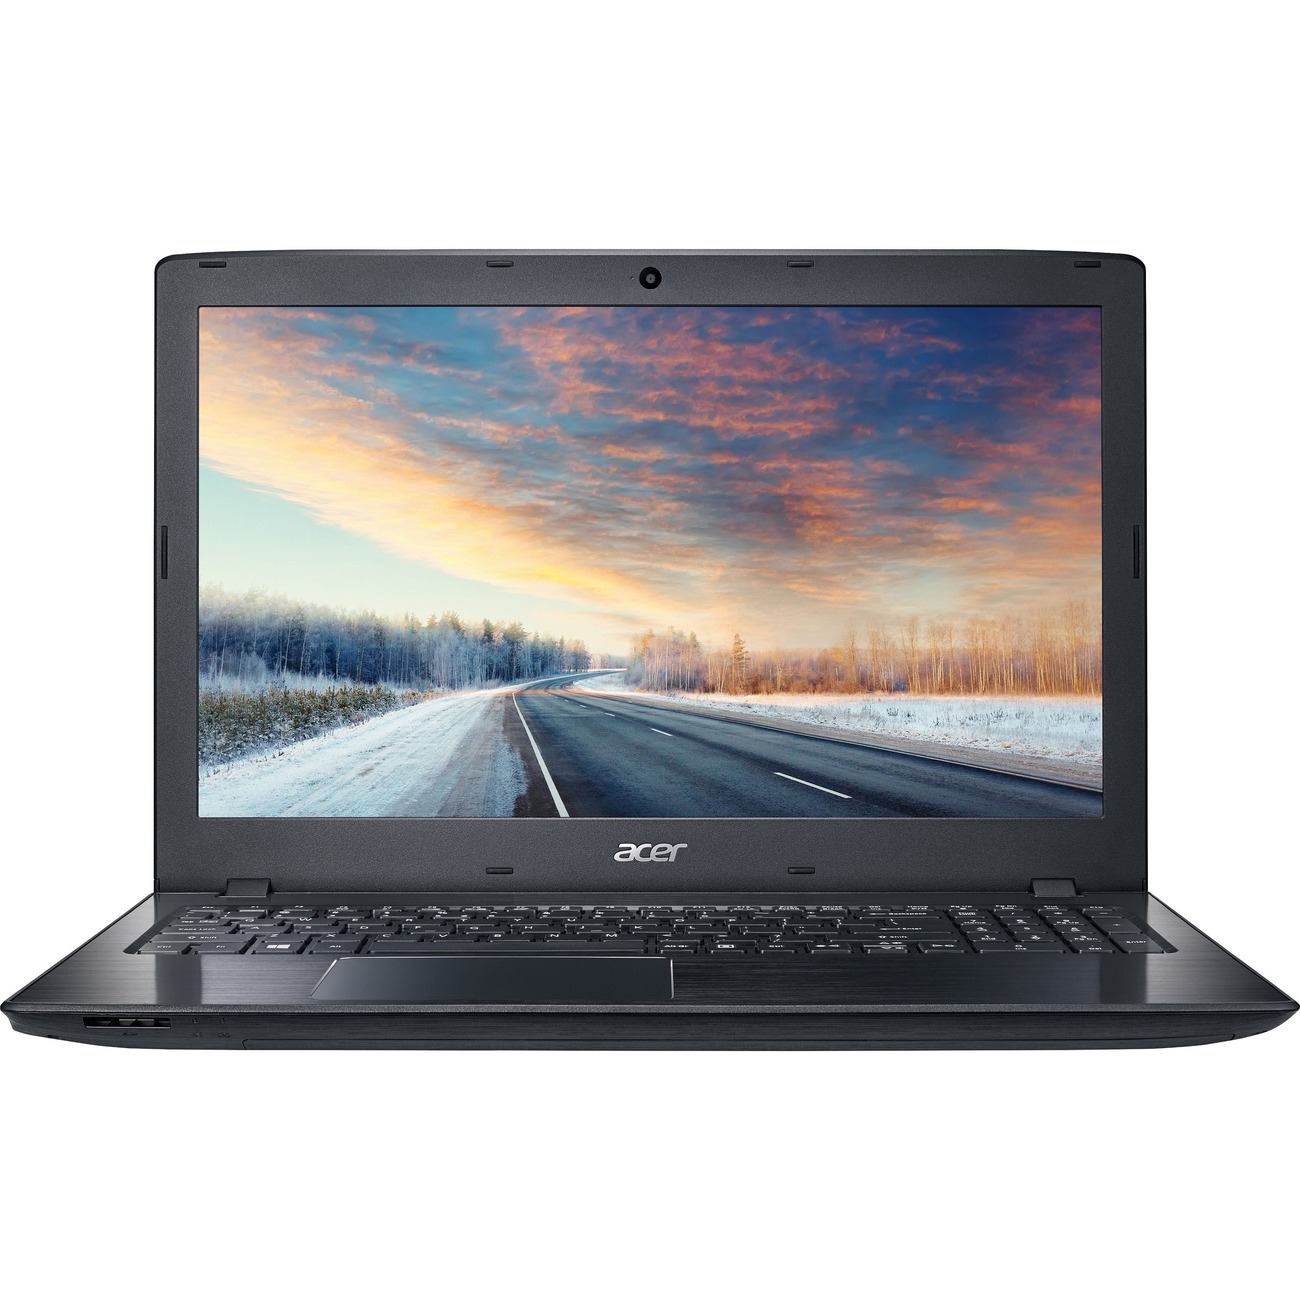 Acer TravelMate P259 15.6in i5 8GB 128GB SSD